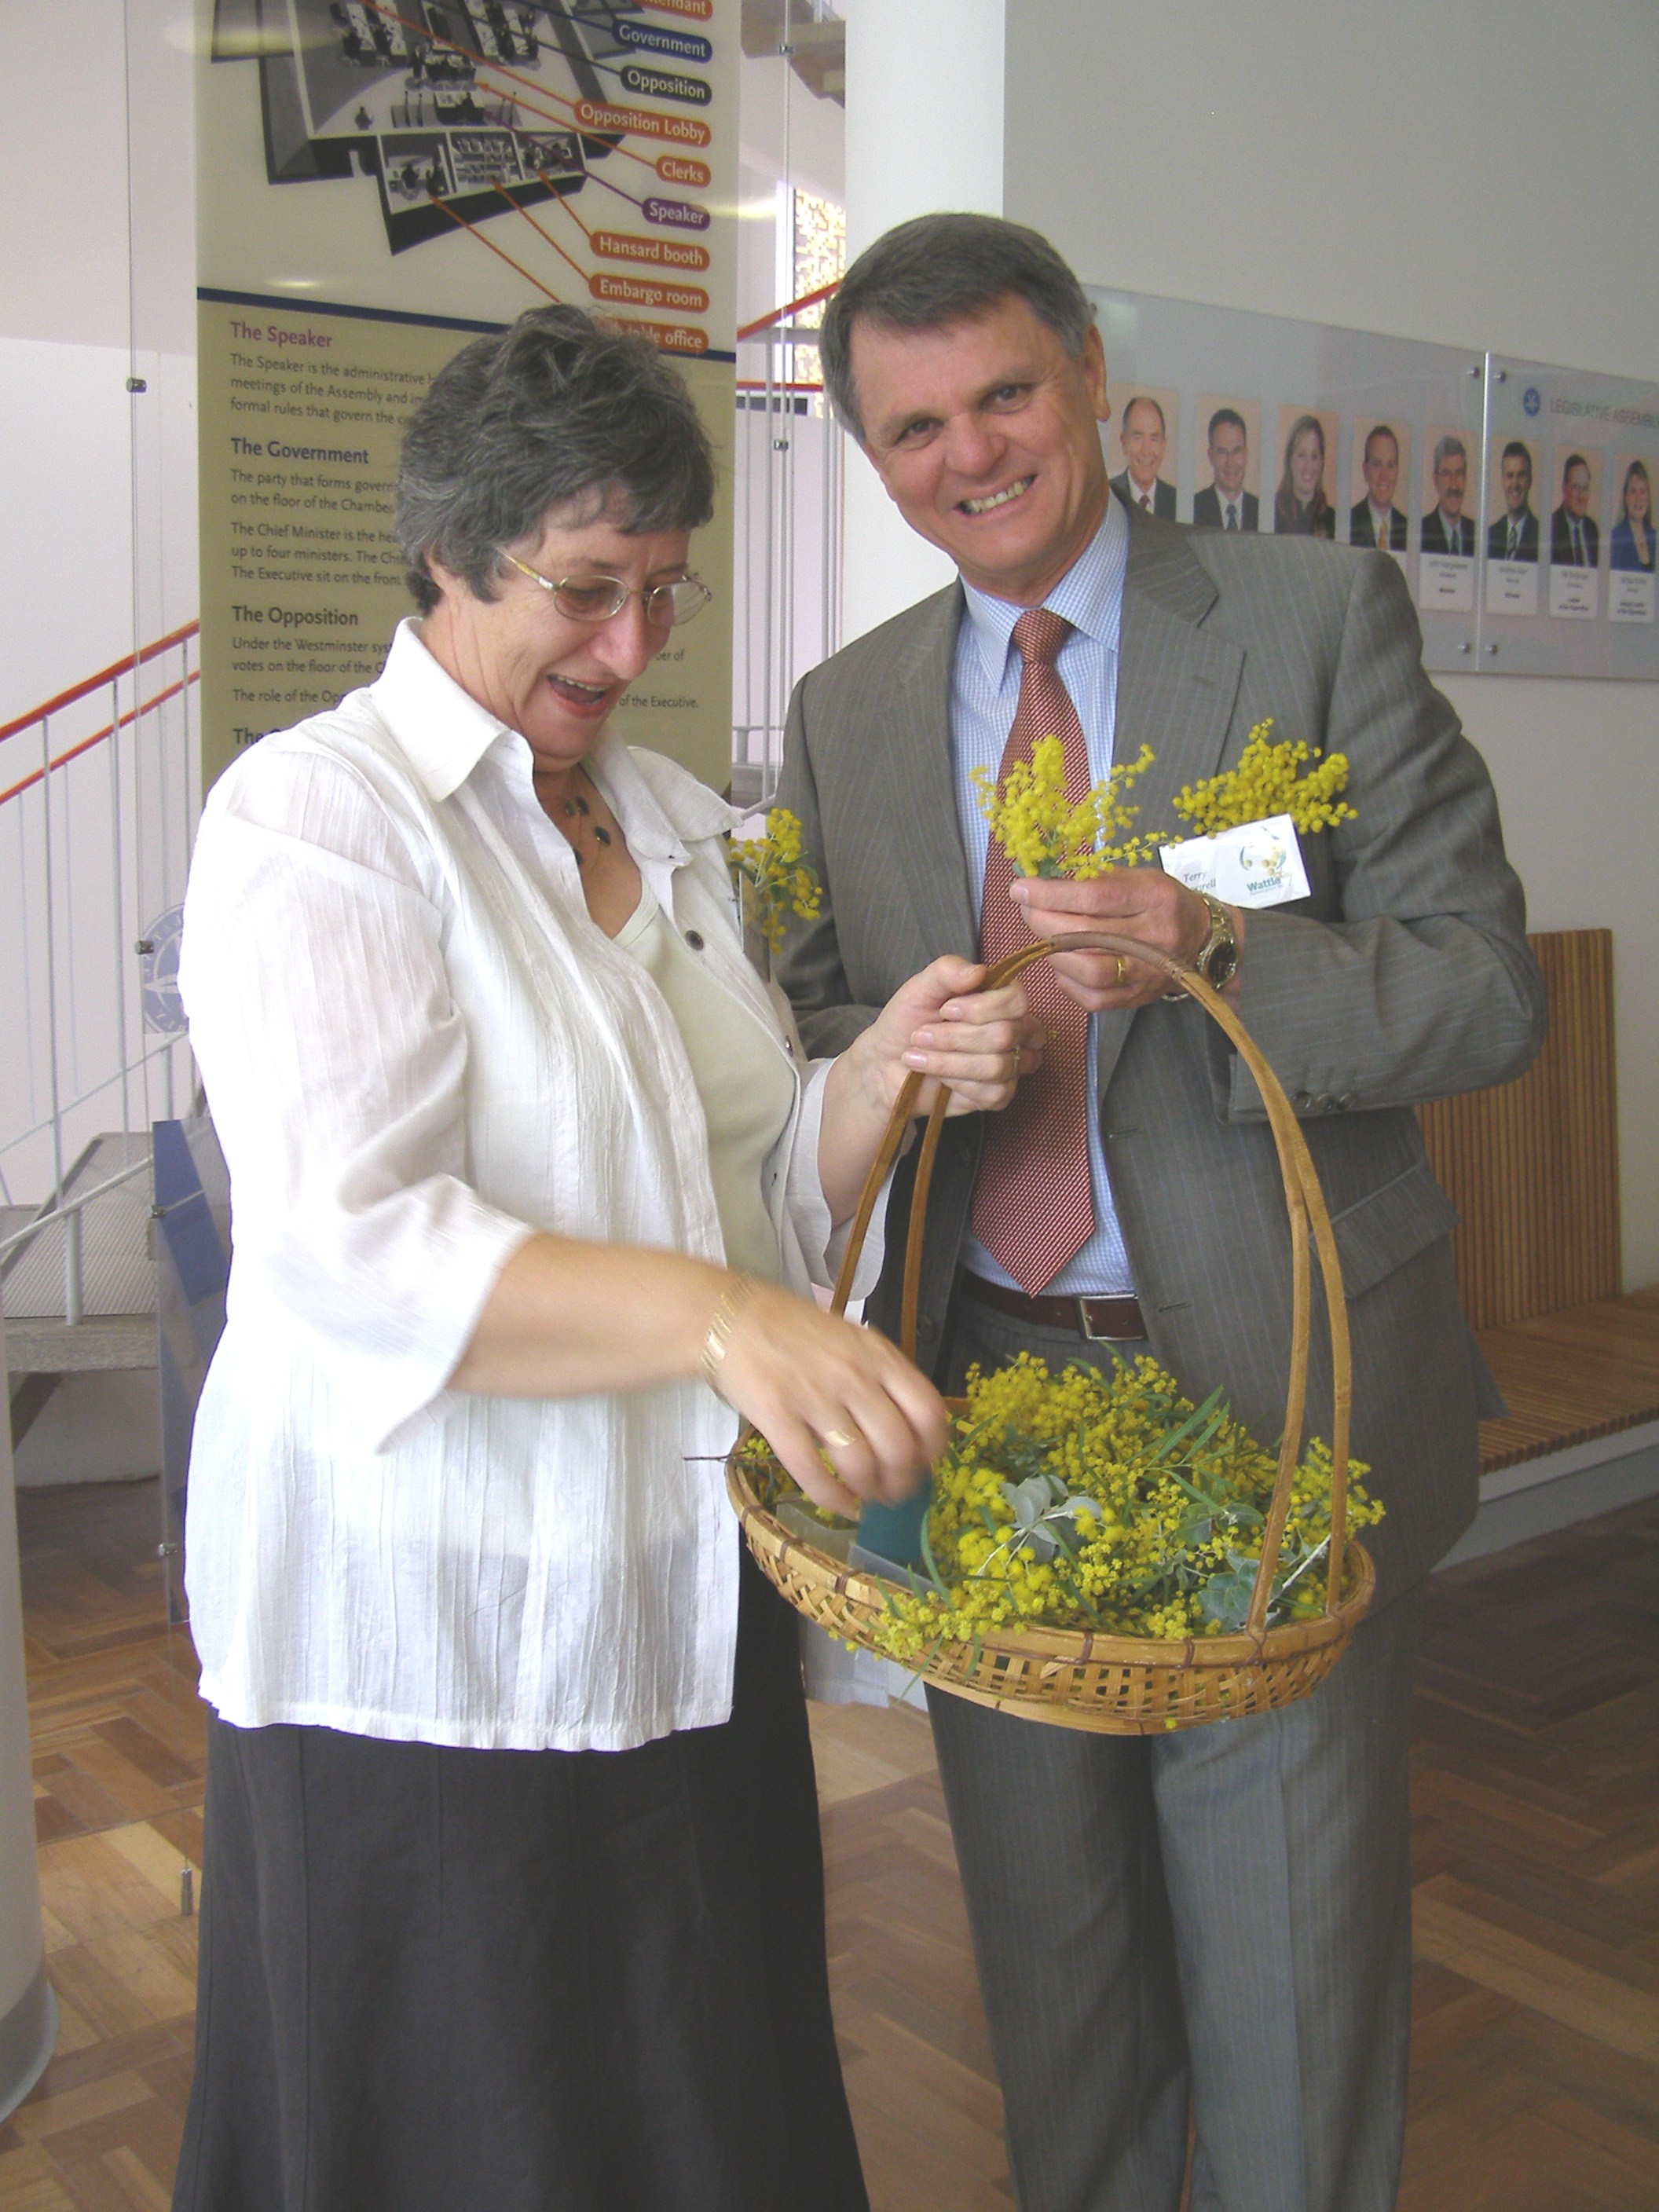 Citizenship ceremony - handing out wattle sprigs